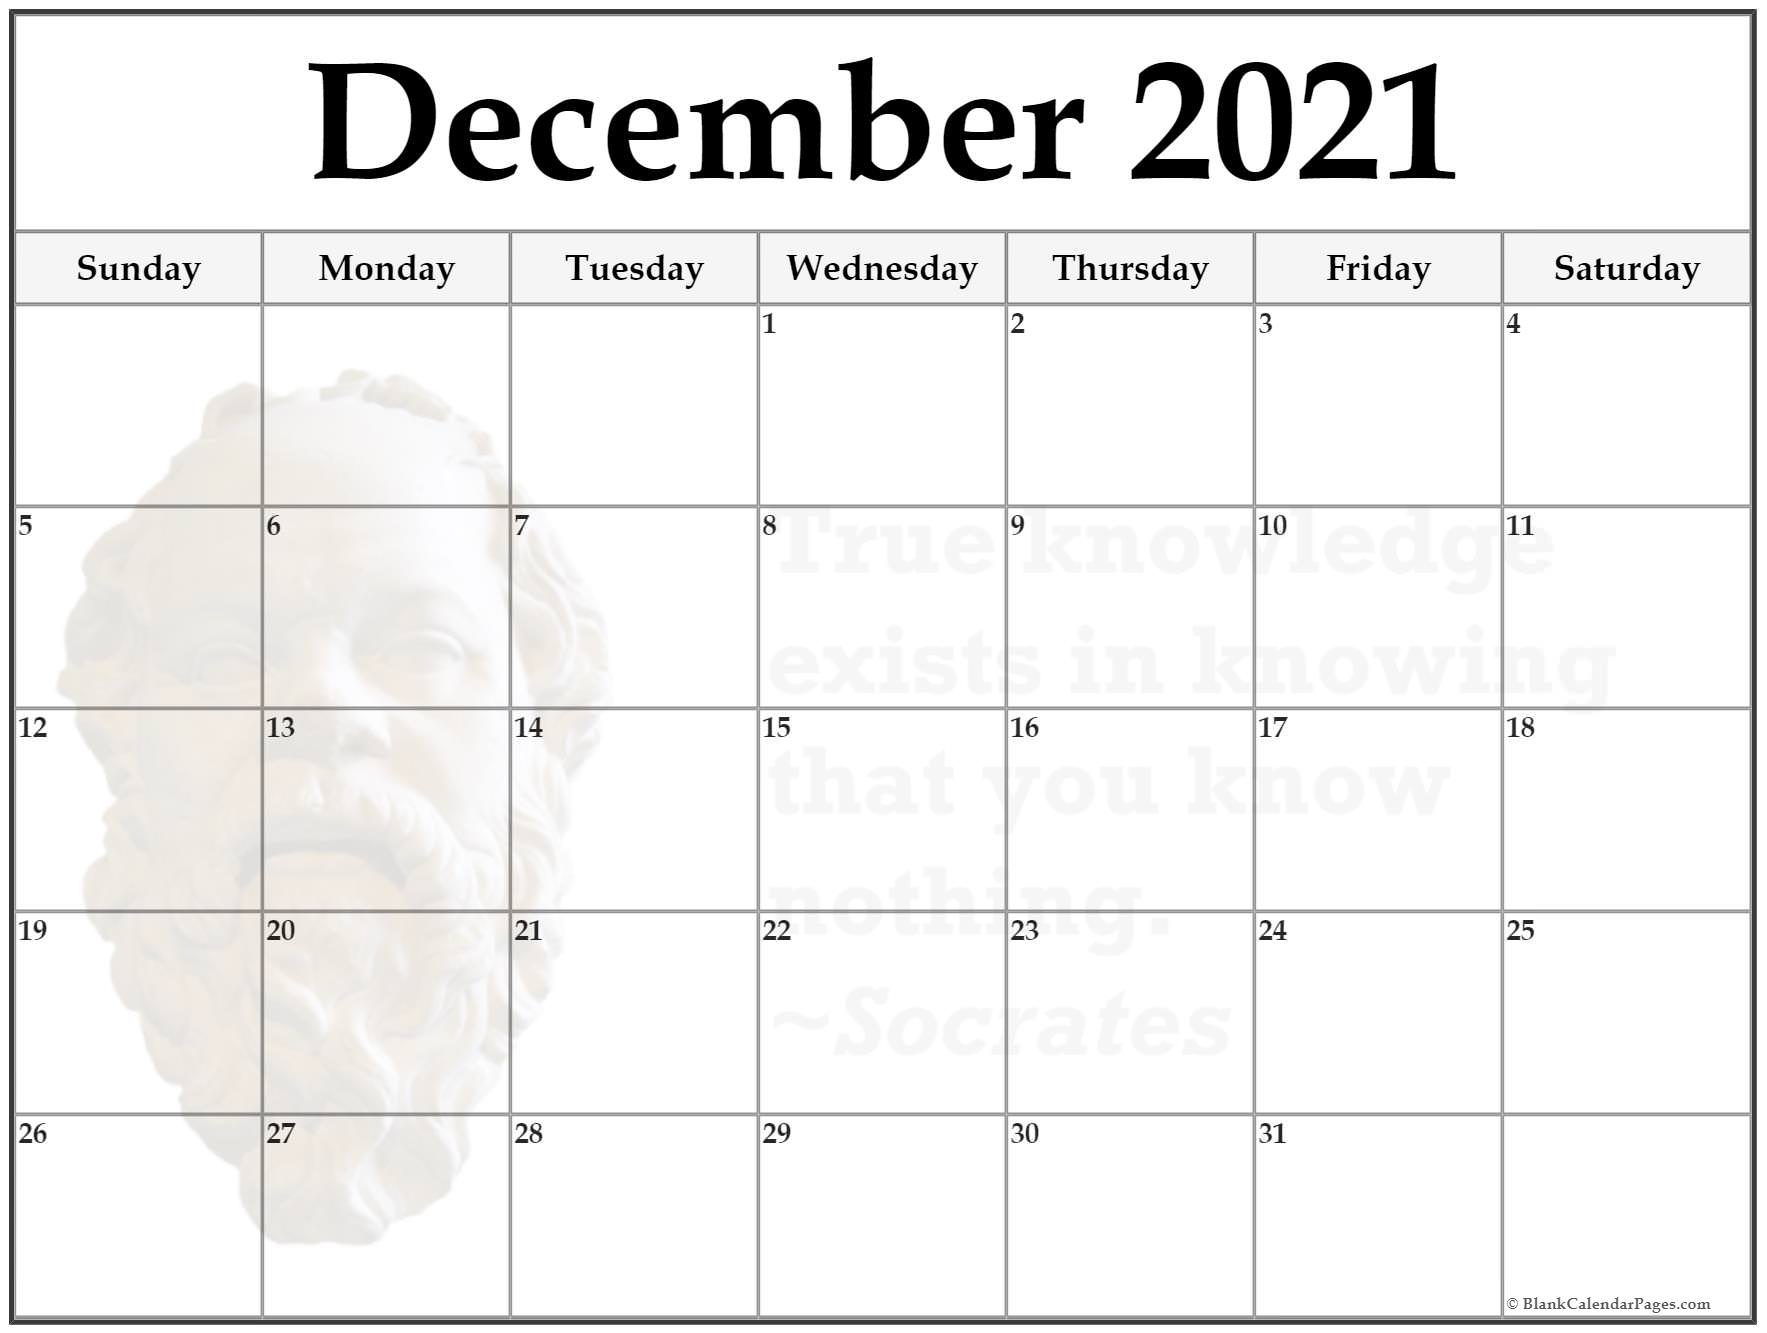 December 2021 monthly quote calendar template. True knowledge exists in knowing that you know nothing. ~Socrates